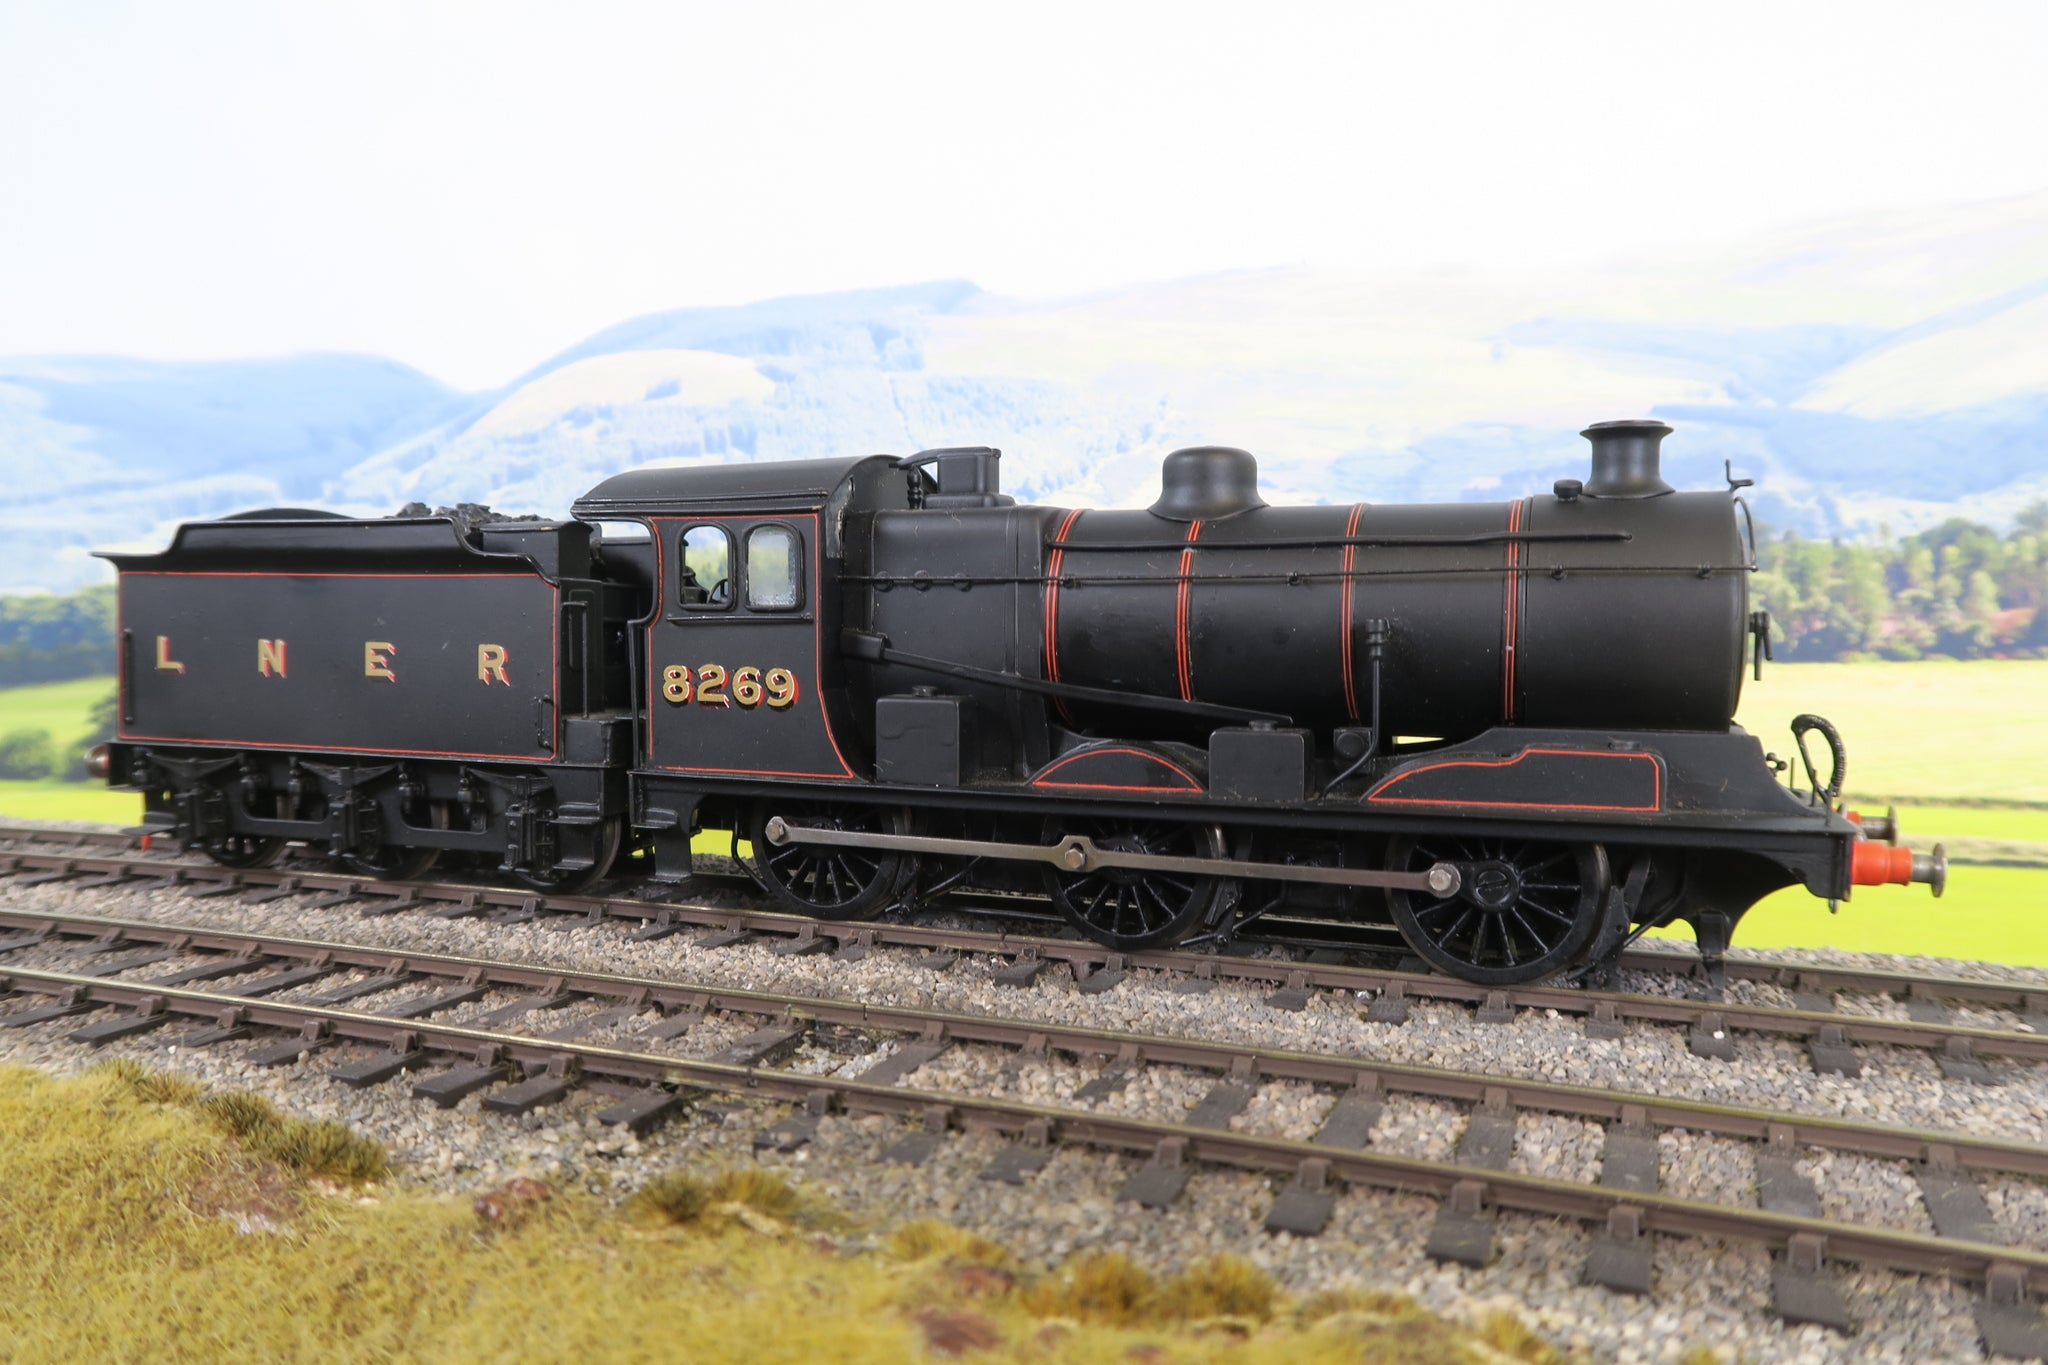 7mm Finescale O Gauge Kit Built LNER J19 Lined Black 0-6-0 '8269'